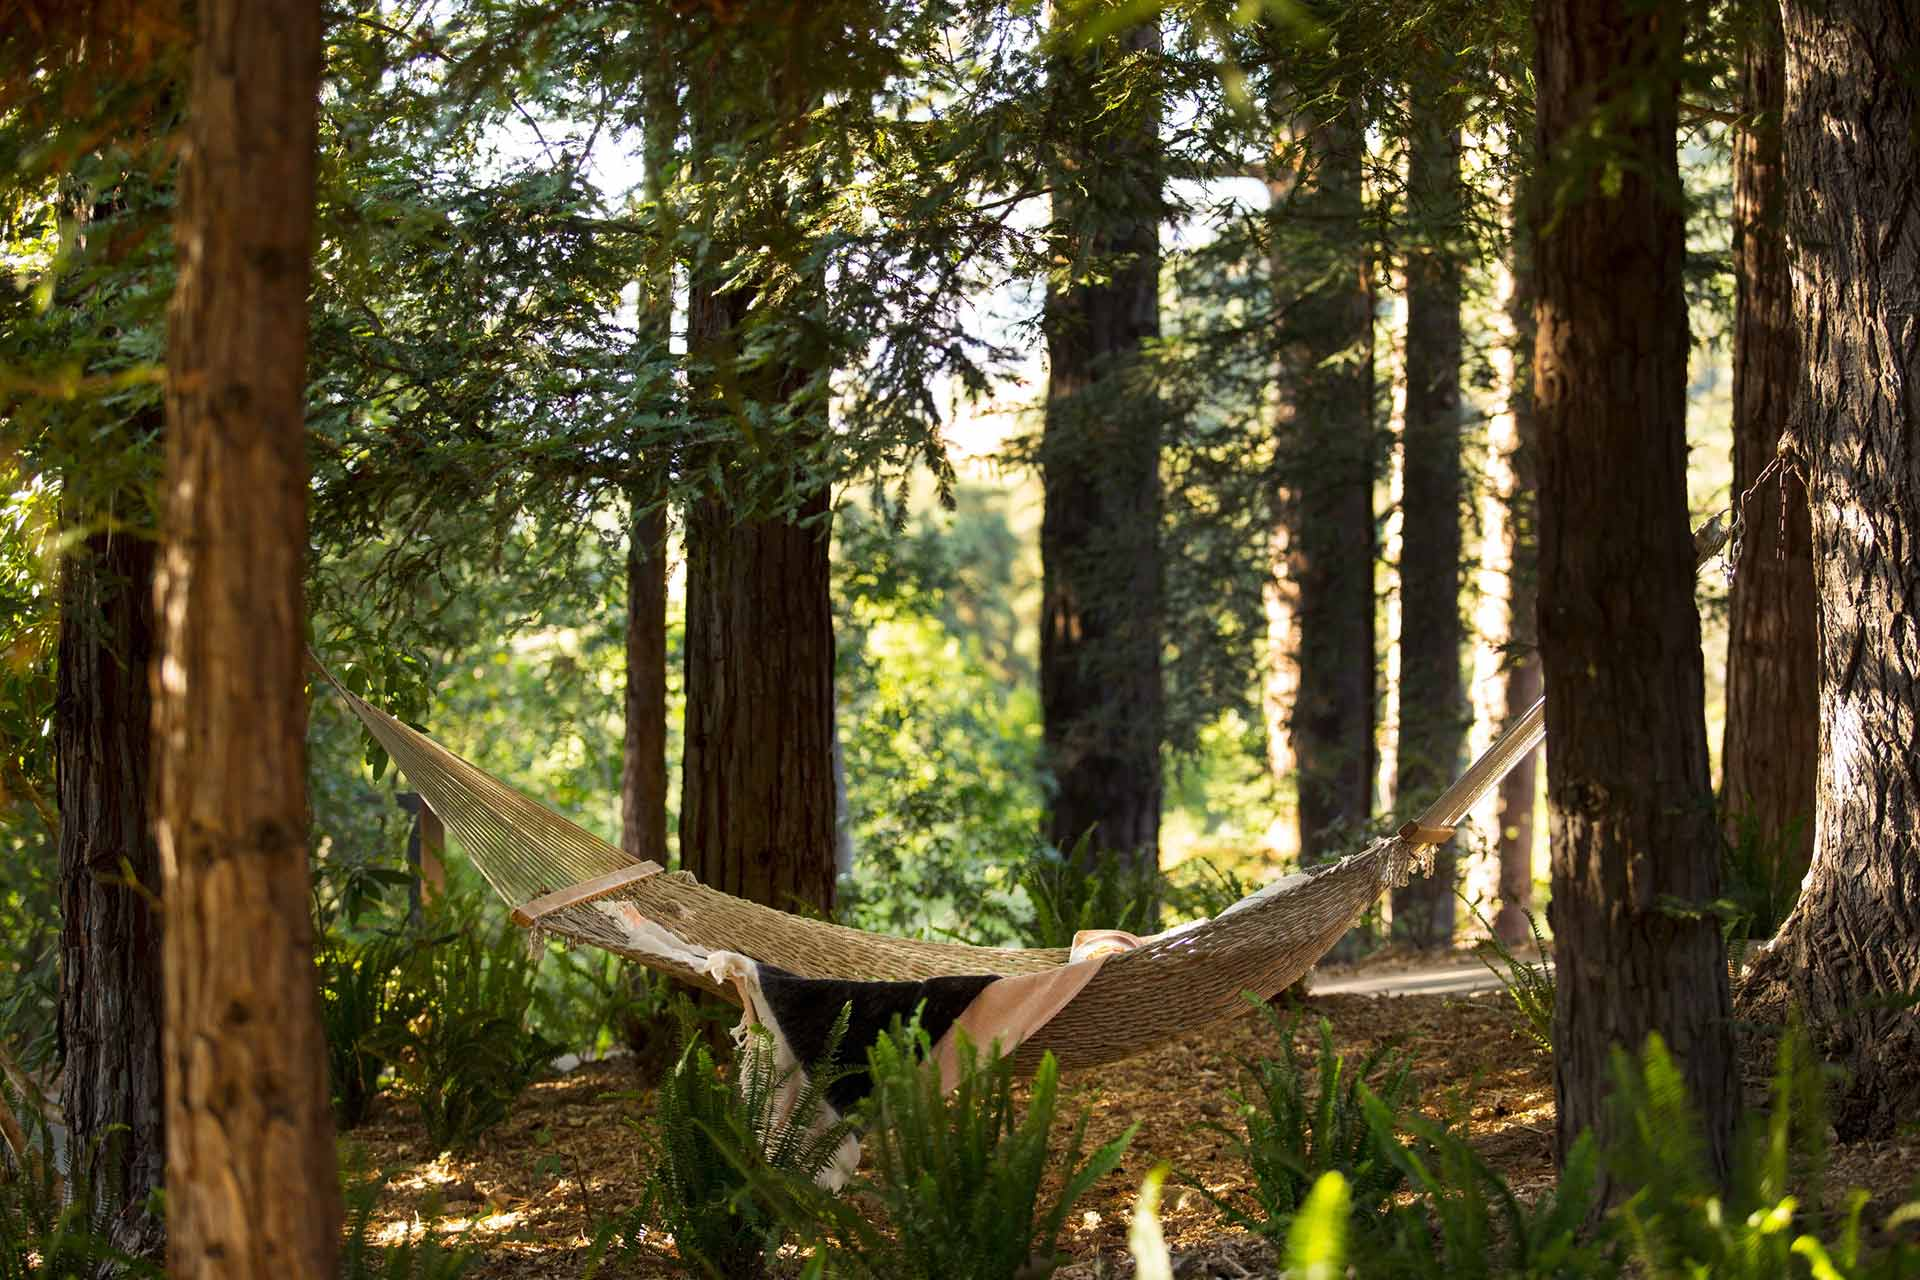 A relaxing break on the hammock amidst the trees